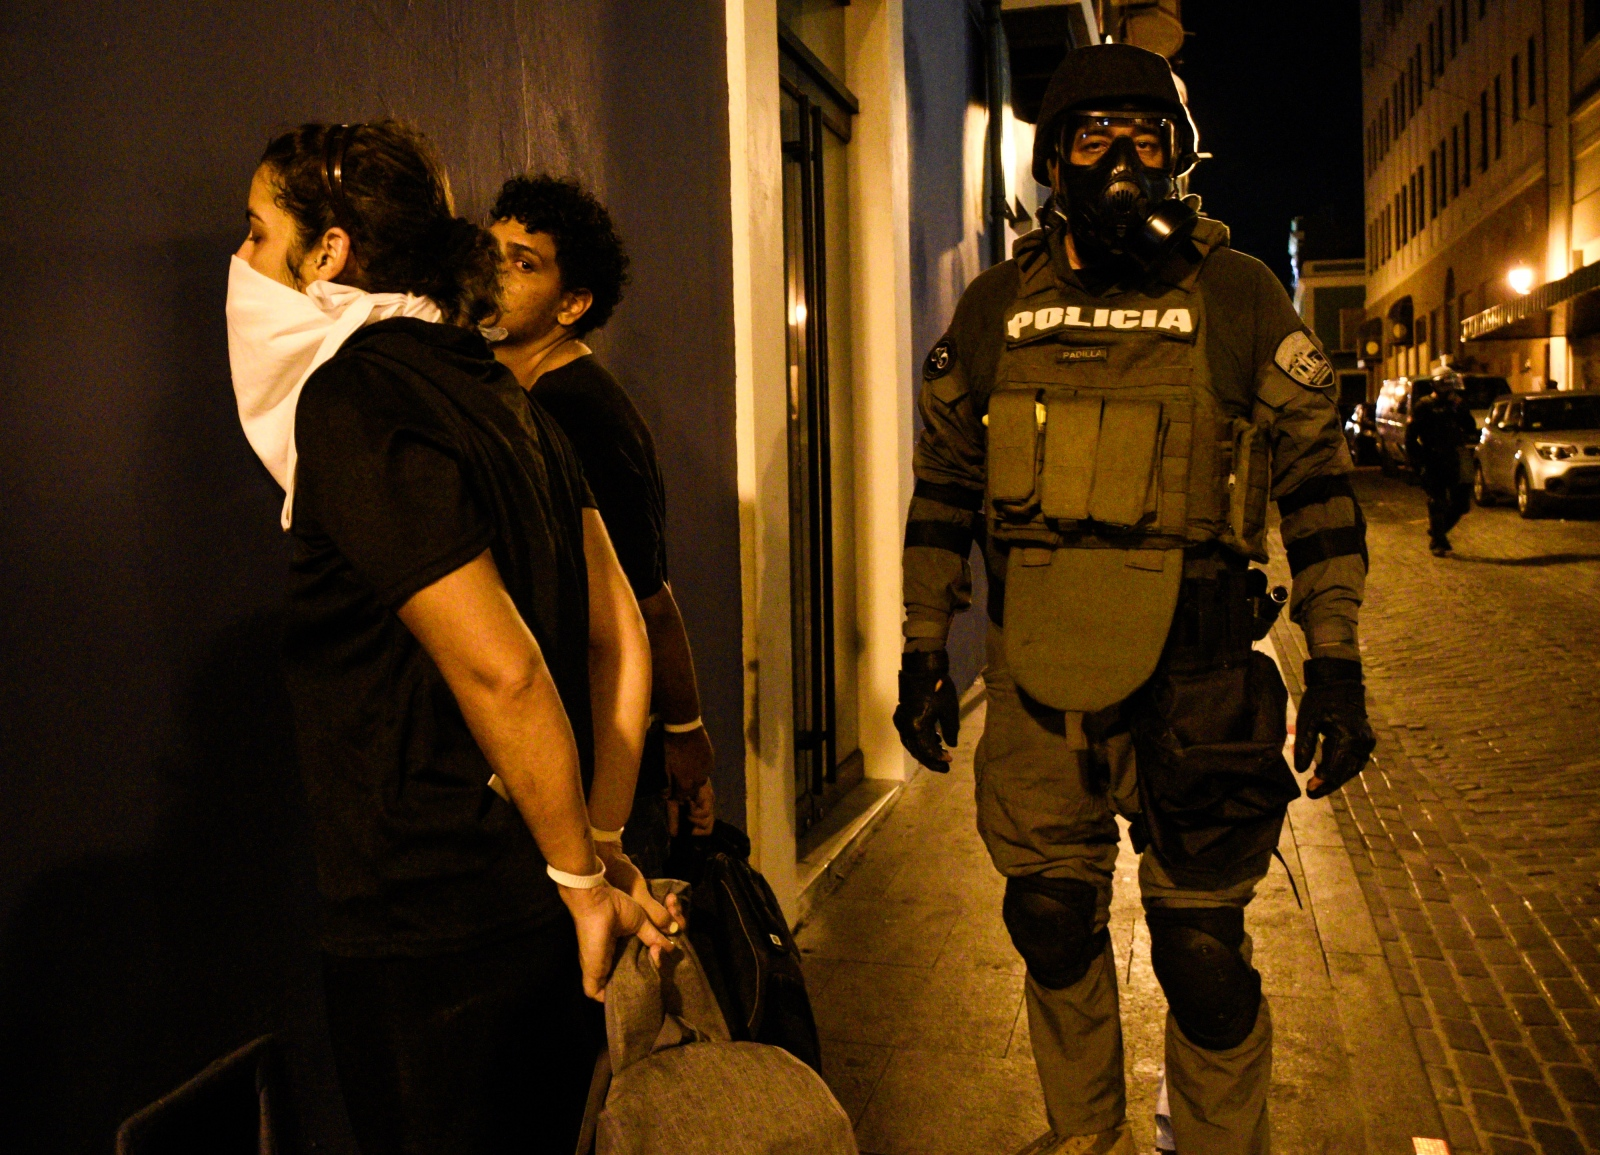 Police arrest demonstrators during the protests calling for the resignation of Governor of Puerto Rico, Ricardo Rosselló. Shot while on assignment for Reuters on July 17, 2019.